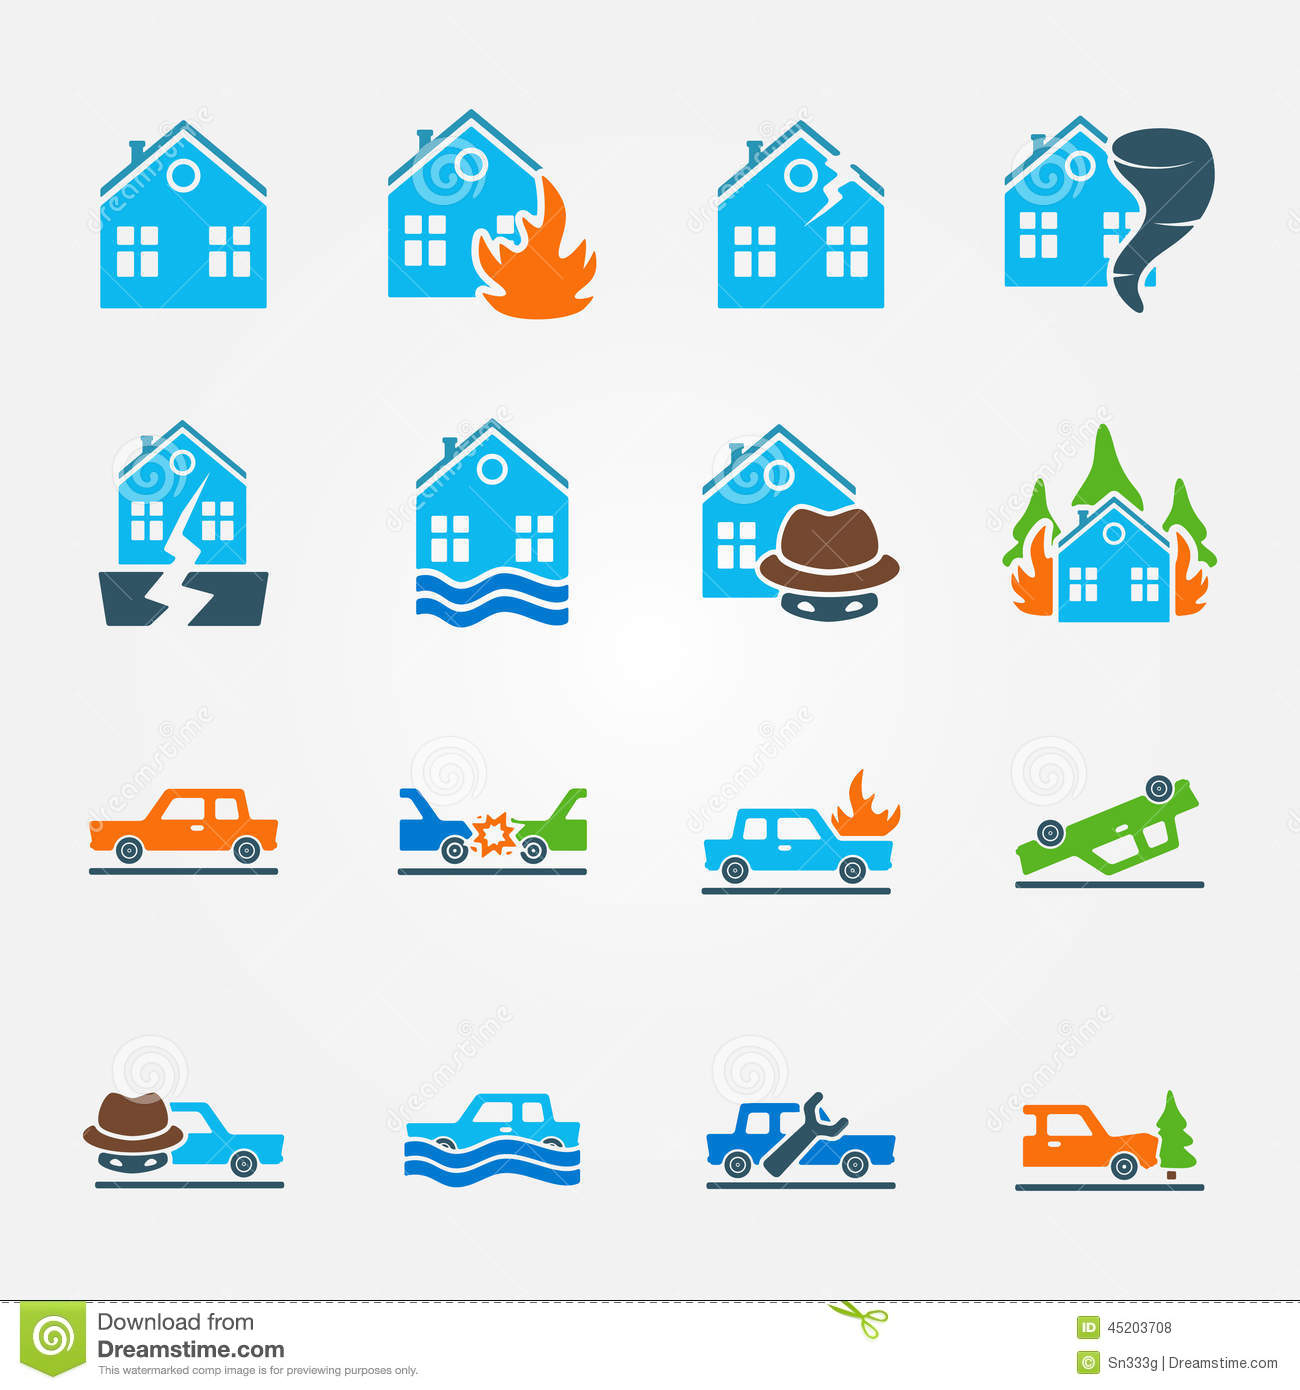 Bright House Car Insurance